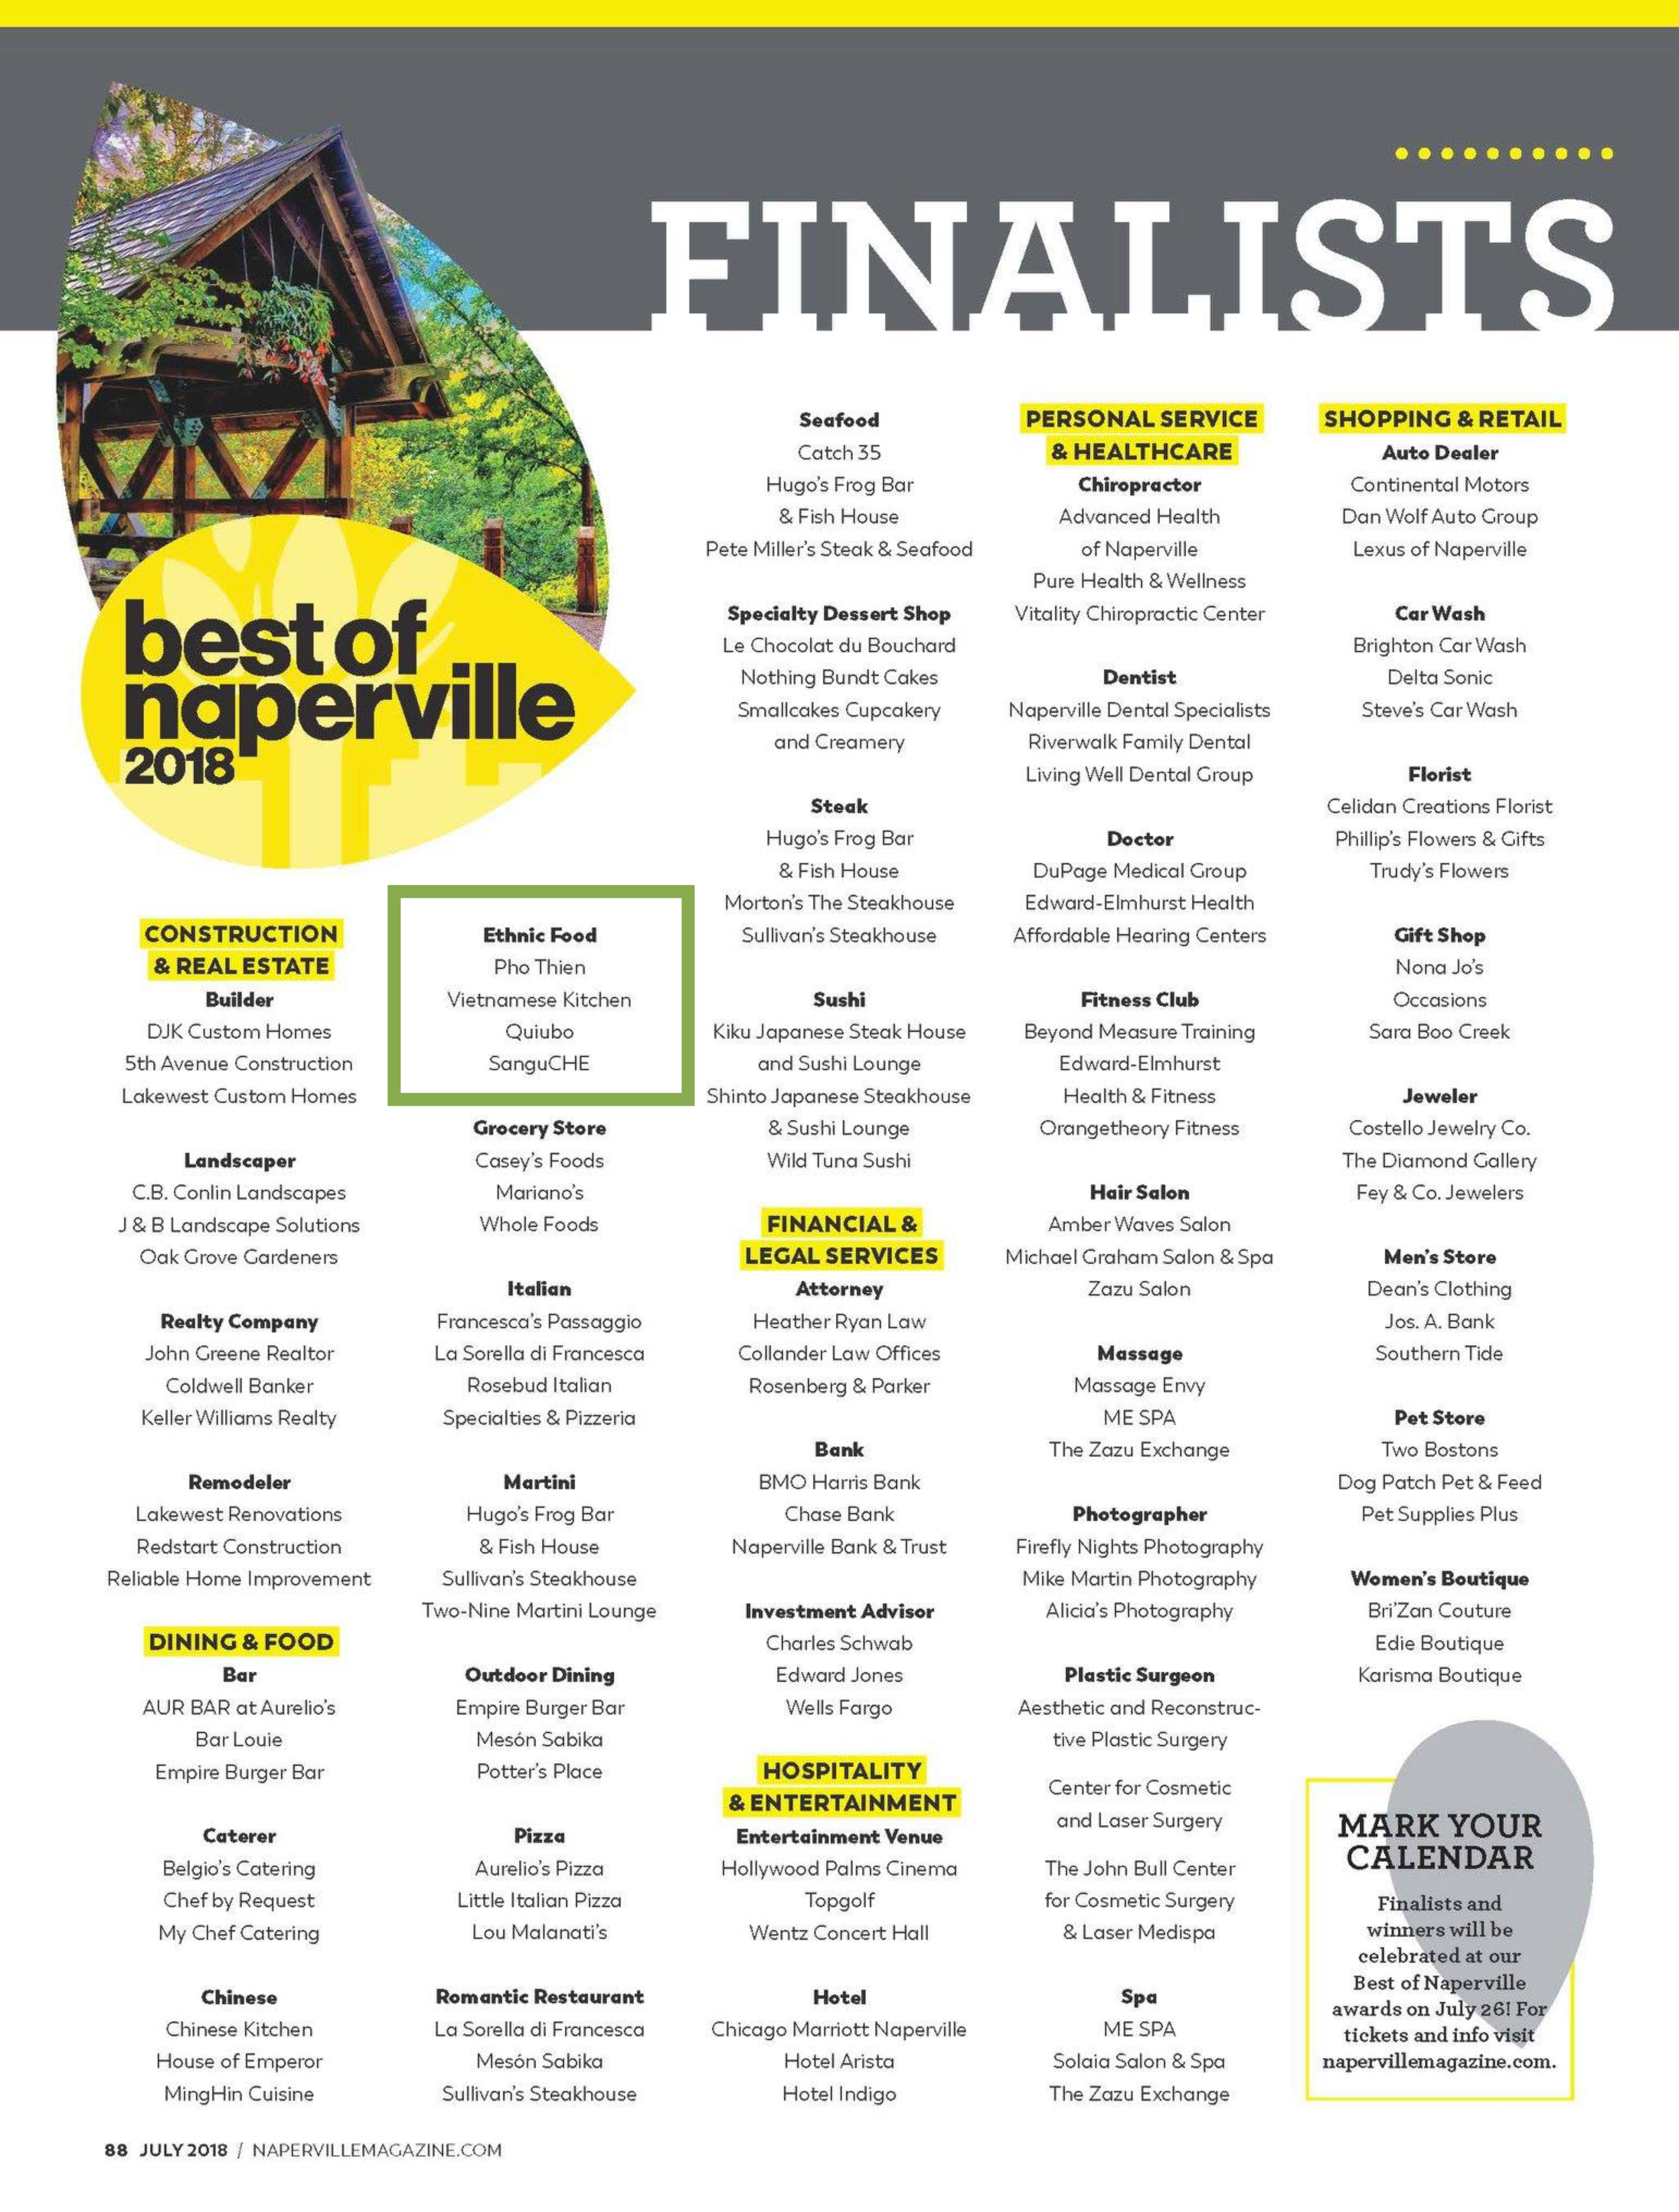 best of naperville finalist@3x.png